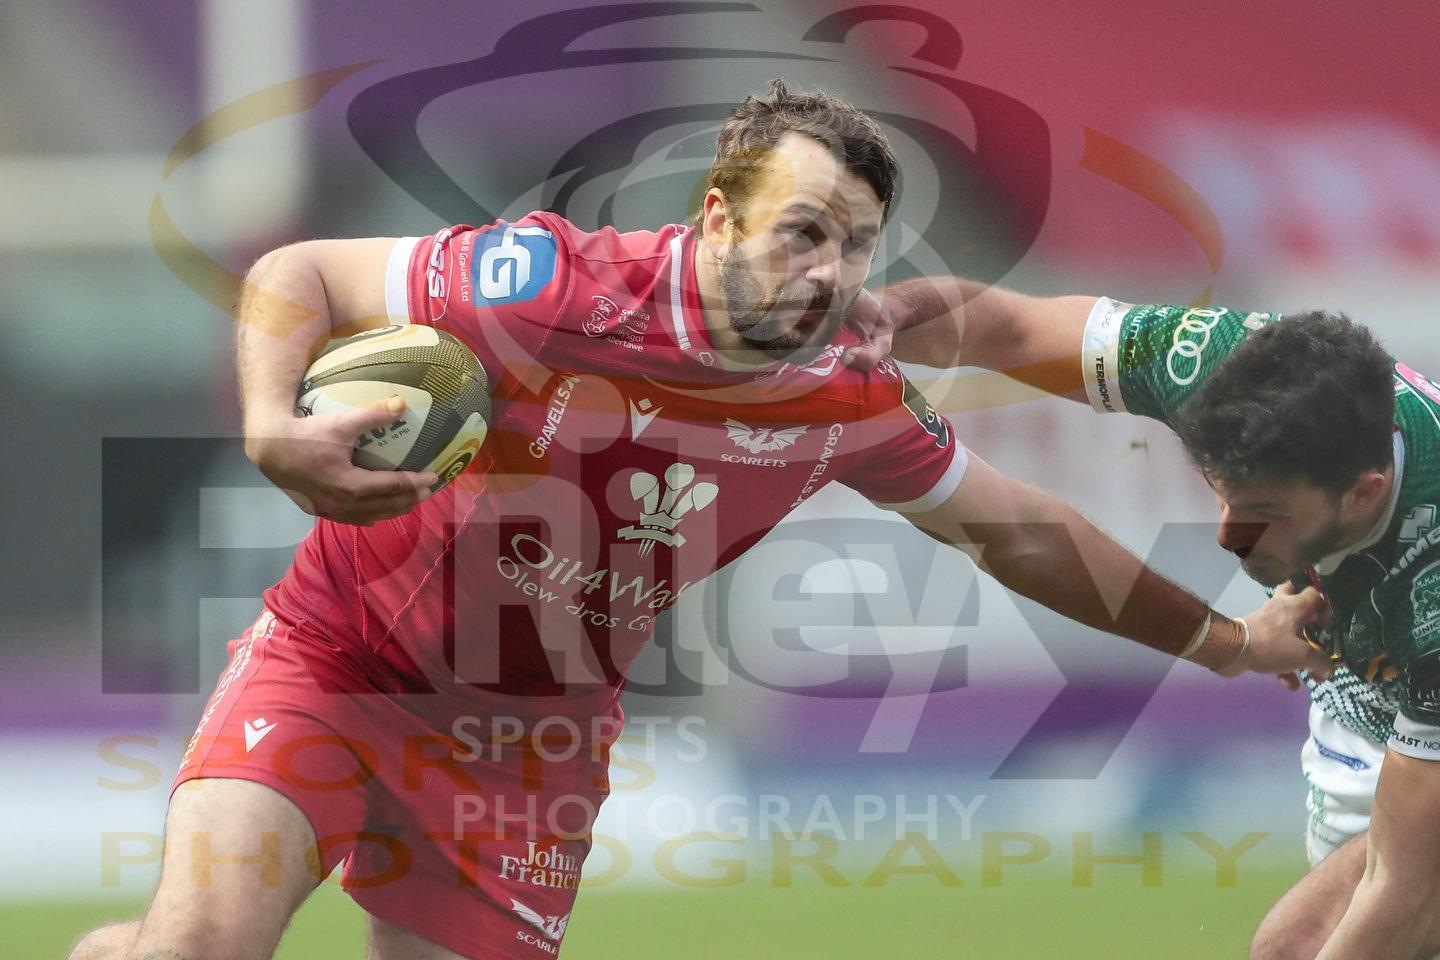 Scarlets v Benetton 21st February 2021